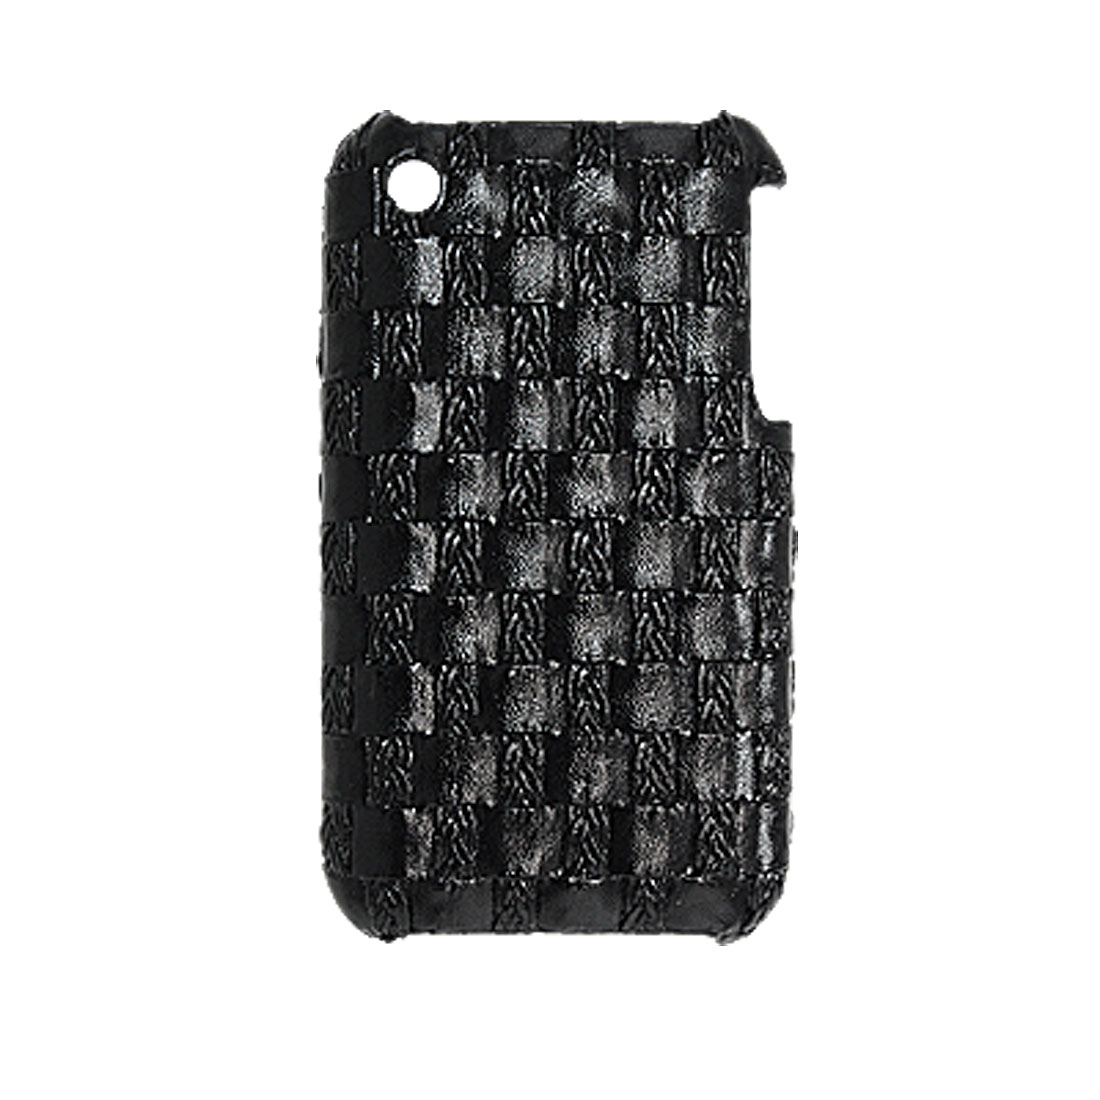 Black Lattice Faux Leather Coated Back Case for iPhone 3G